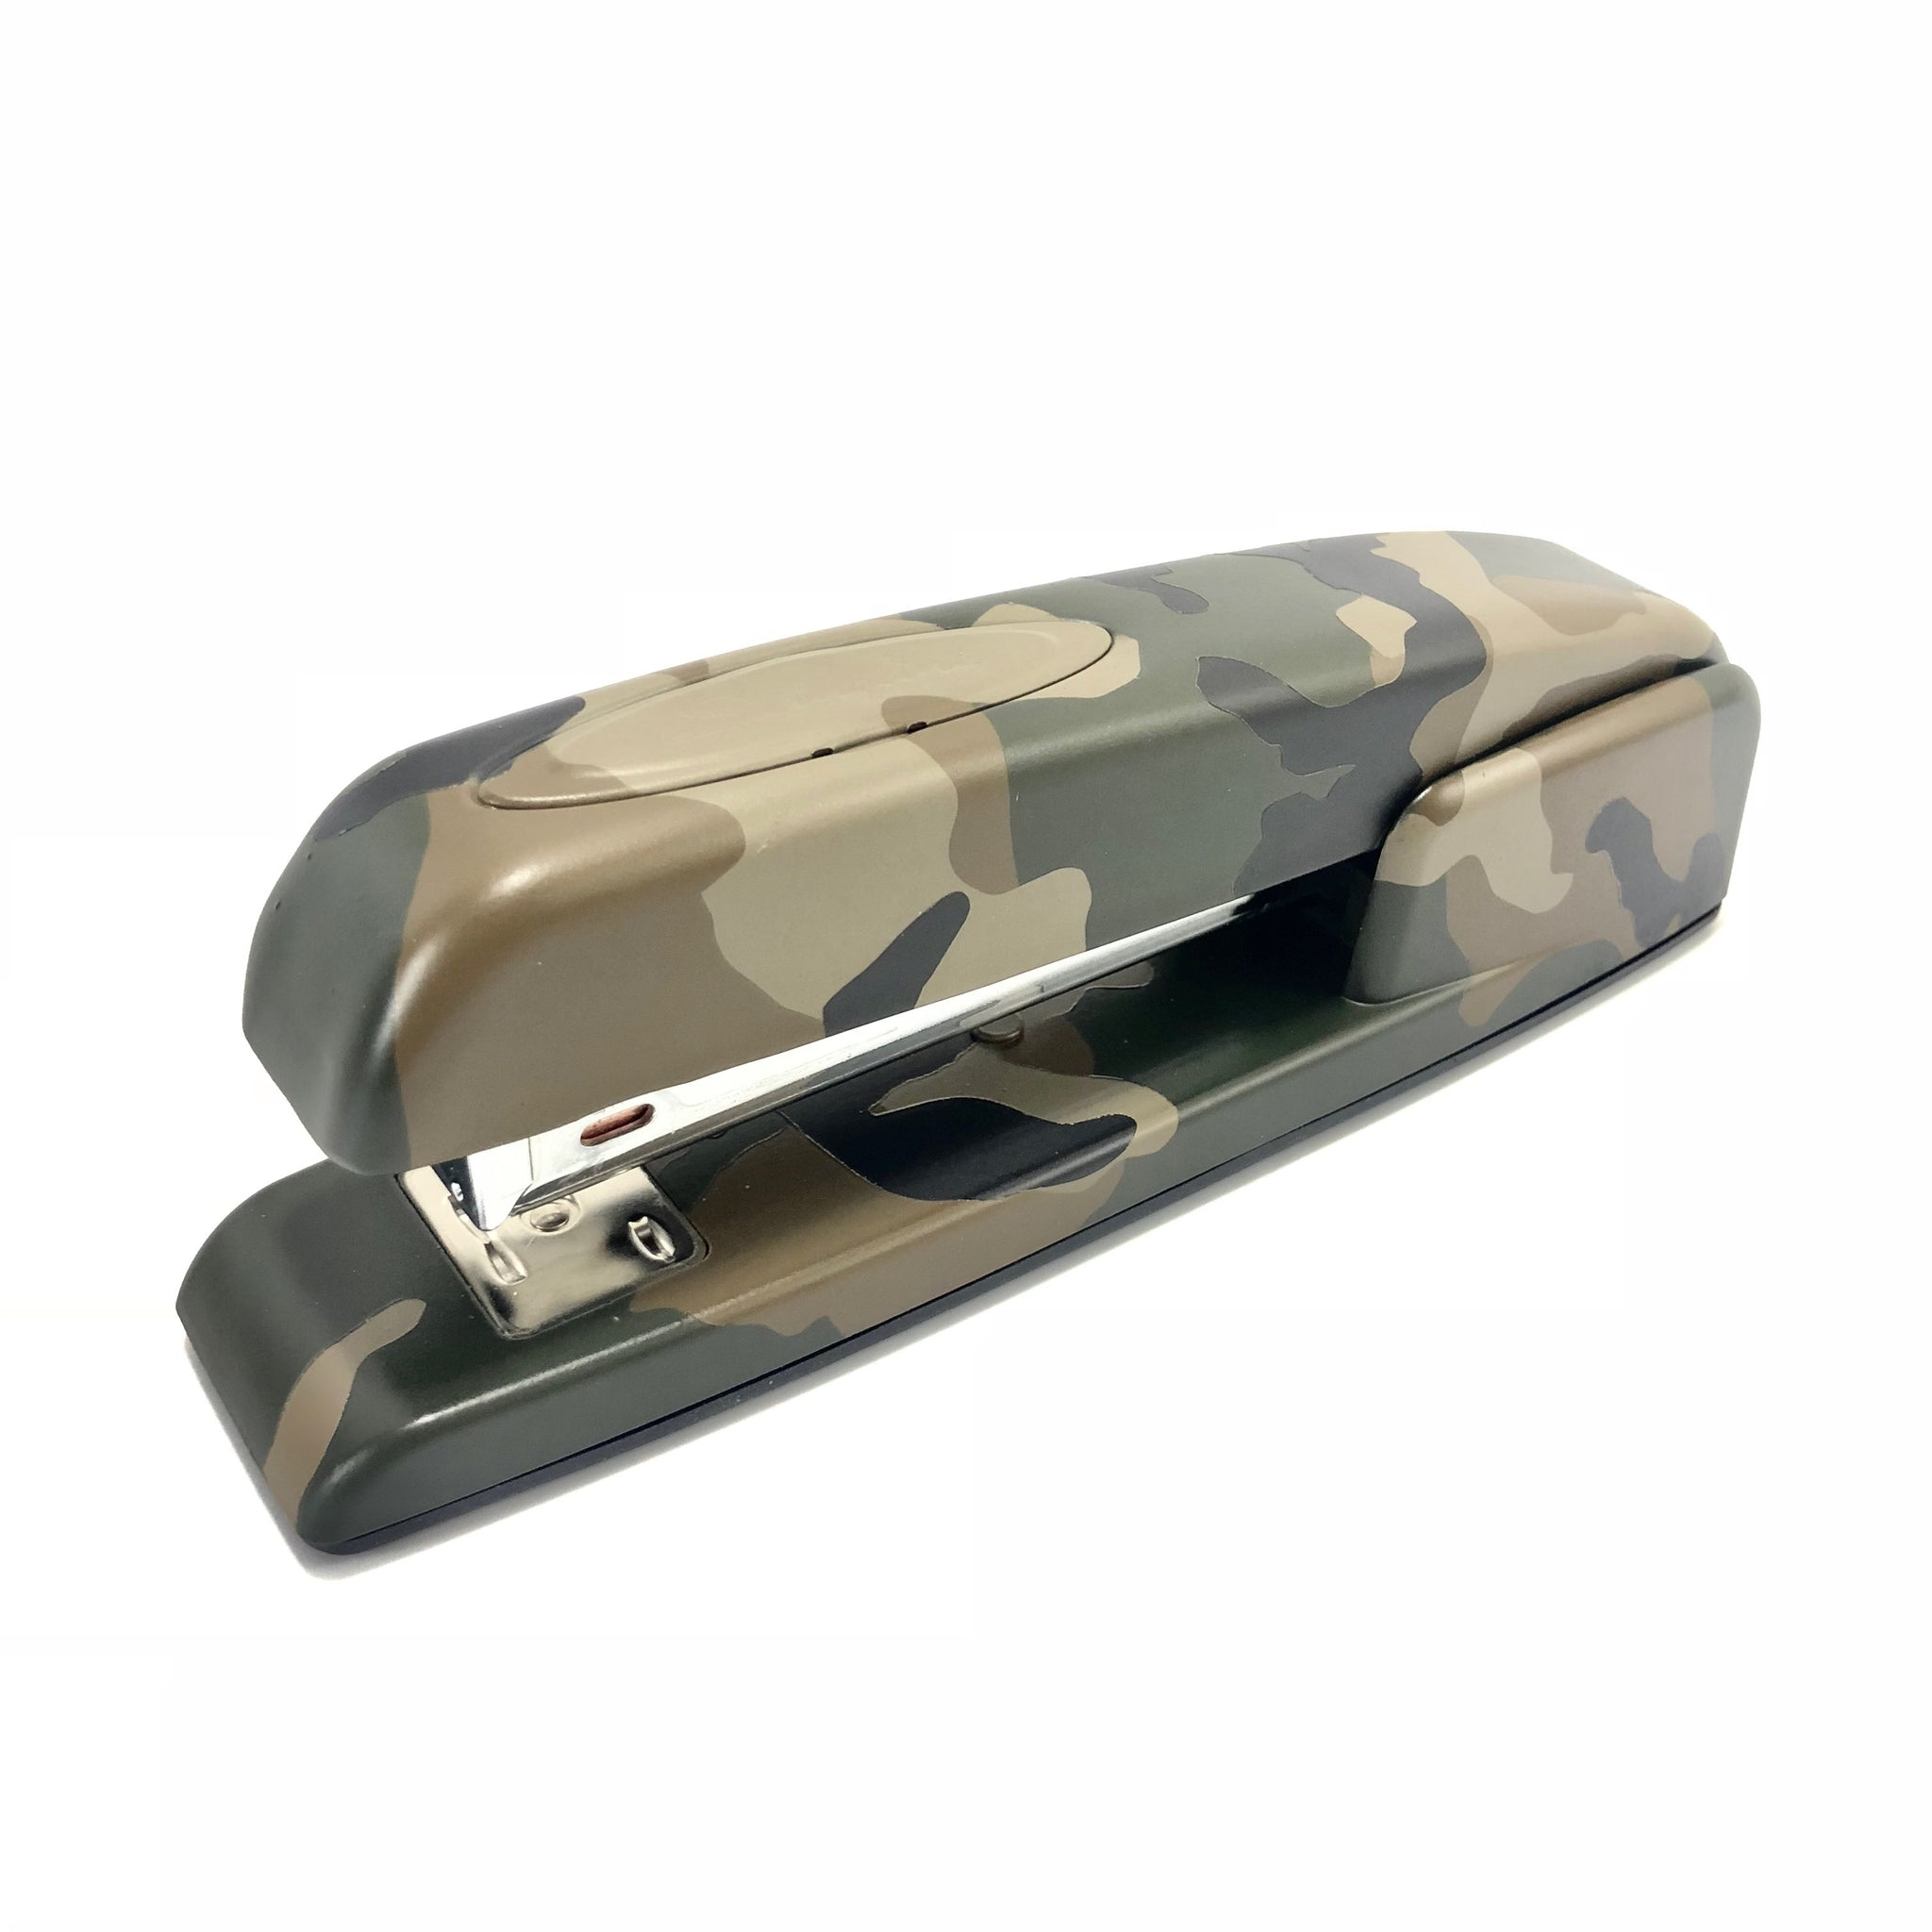 Woodland M81 Swingline Stapler - Limited Run